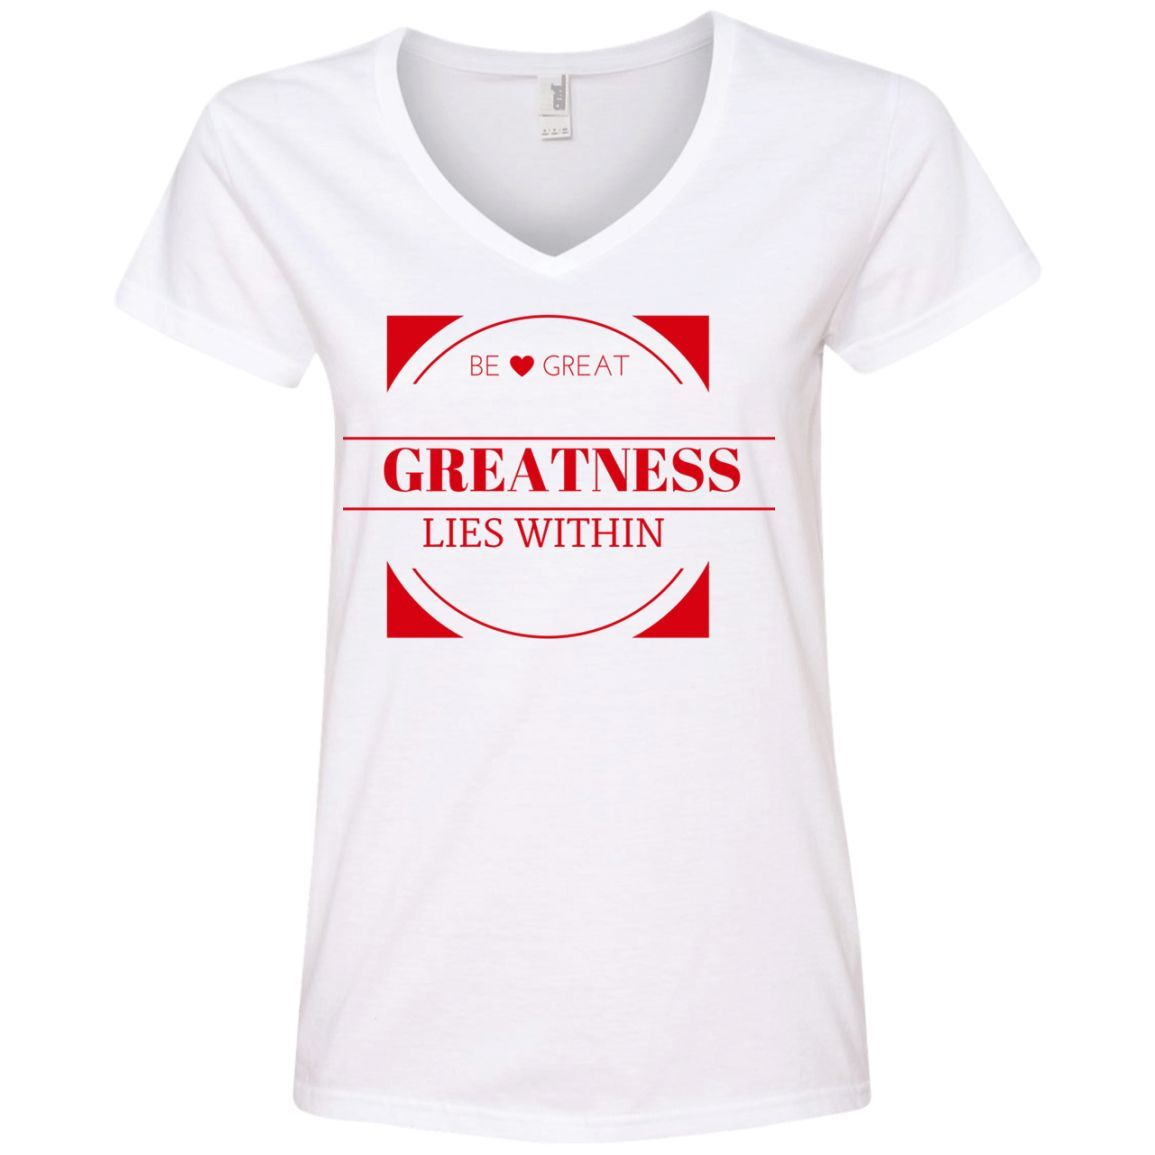 Ladies' V-Neck Tee